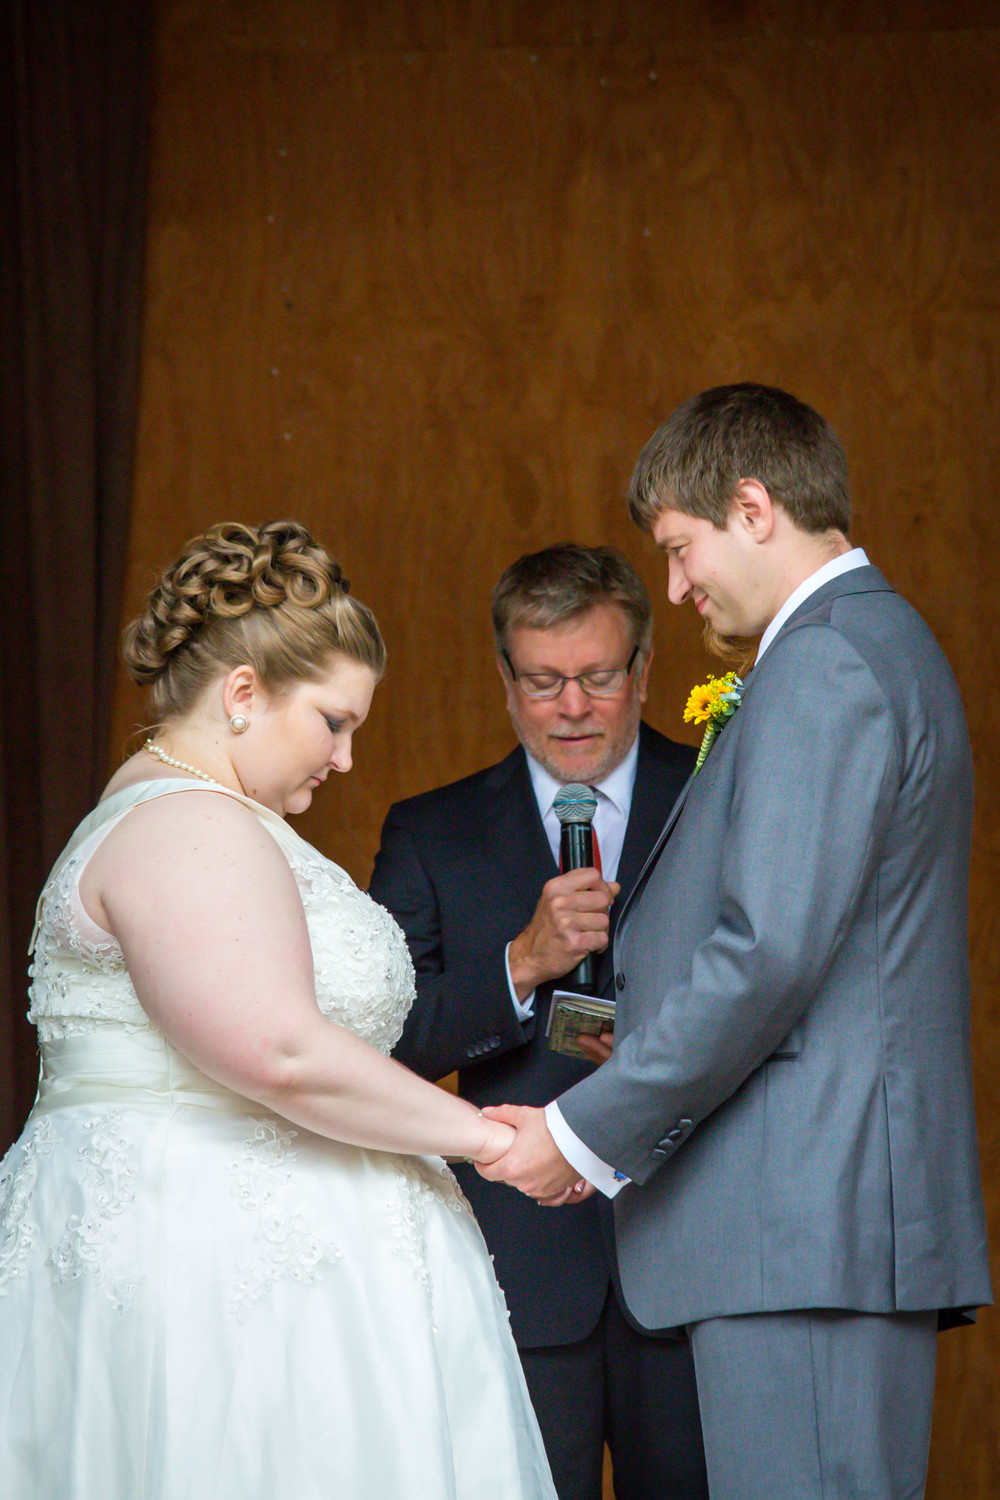 See what I mean?! He can't even take his eyes off of her during this moment of prayer. I love this image.